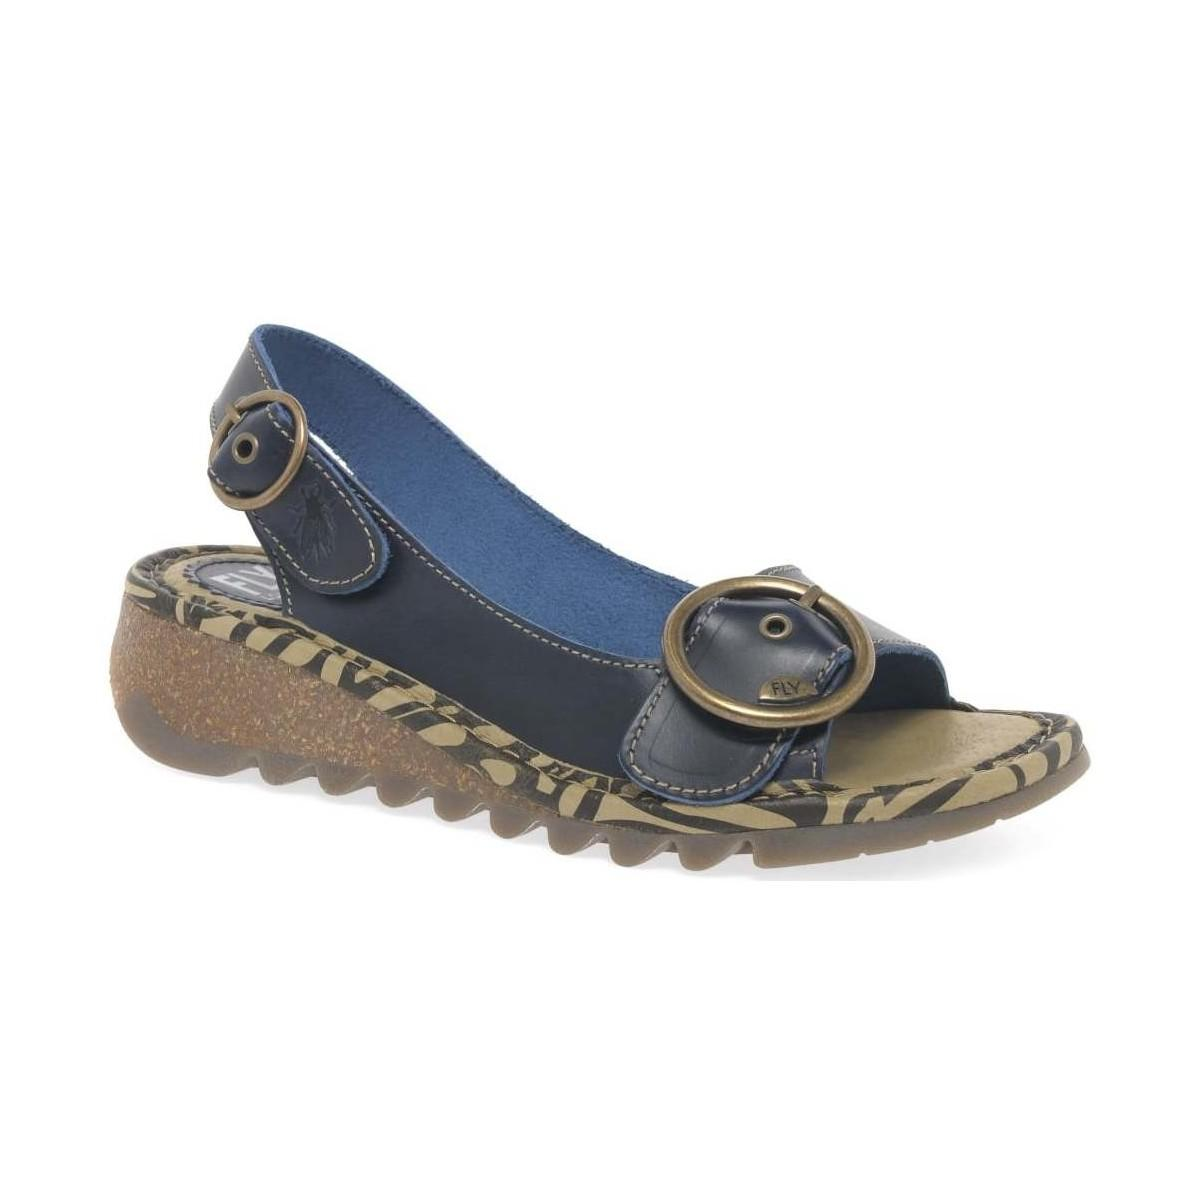 6624f04c002bf Fly London Tram Womens Casual Sandals Women's Sandals In Blue in ...